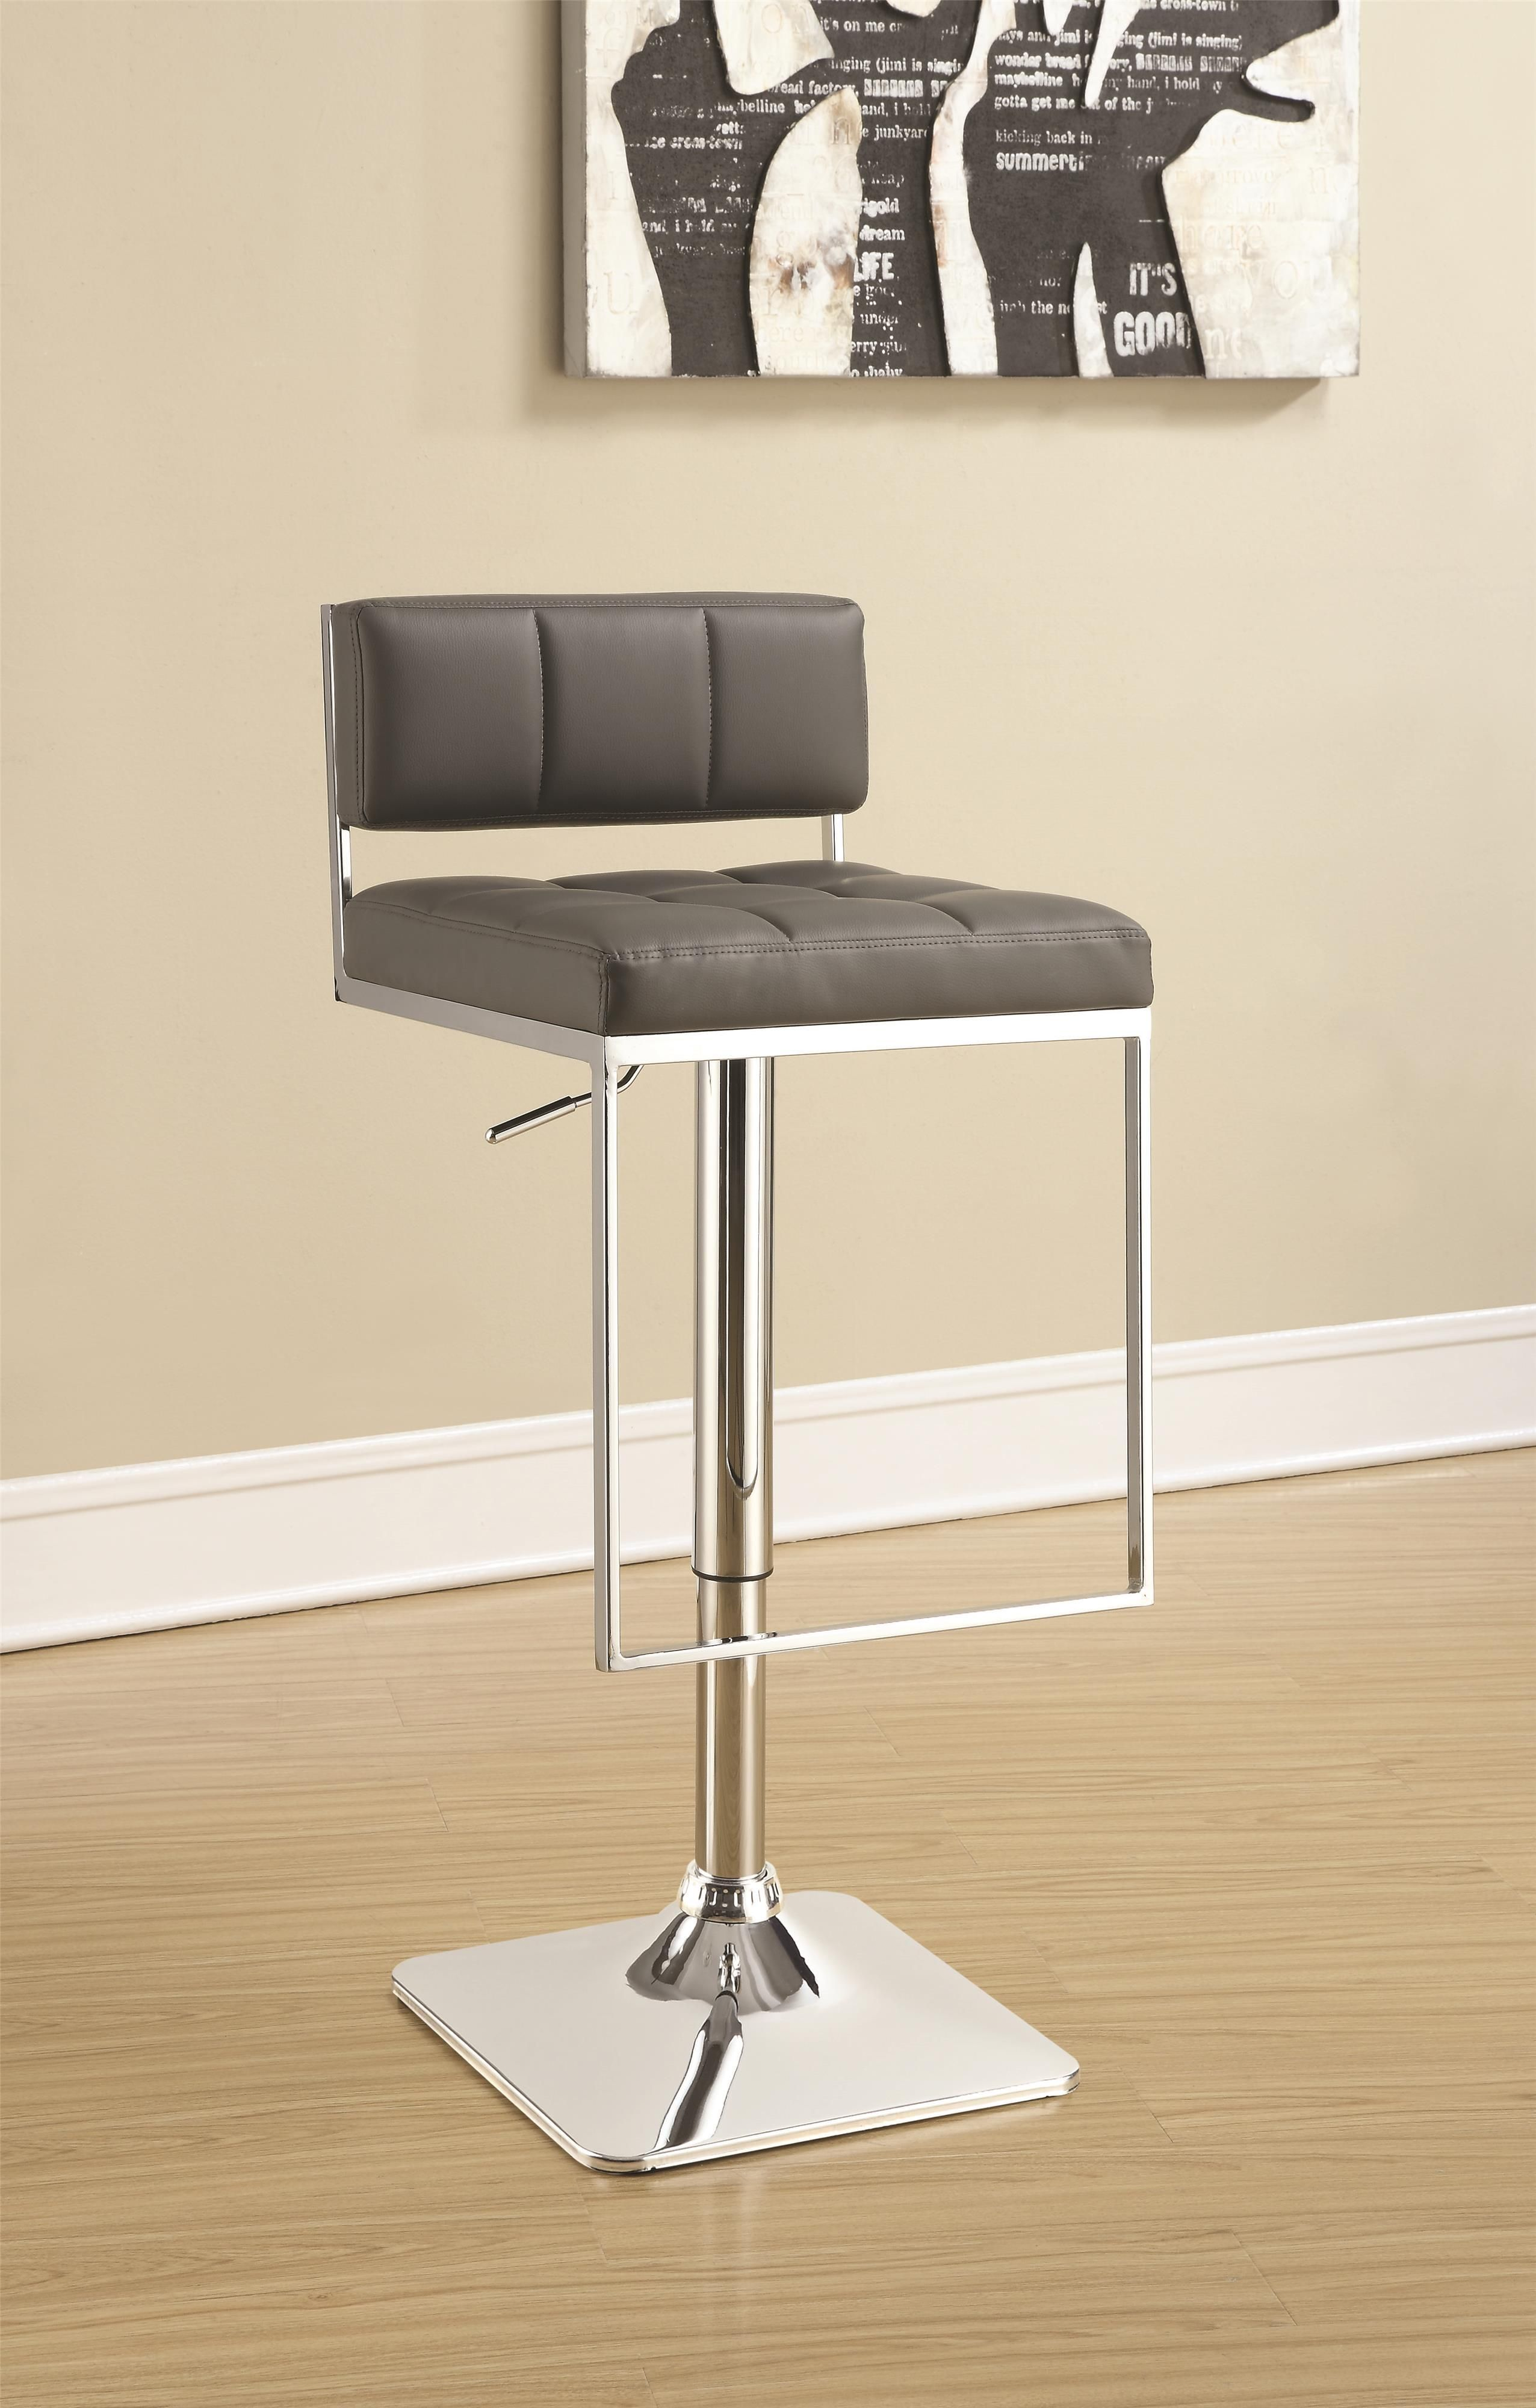 Cs195 Bar Stool In 2020 Adjustable Bar Stools Modern Bar Stools